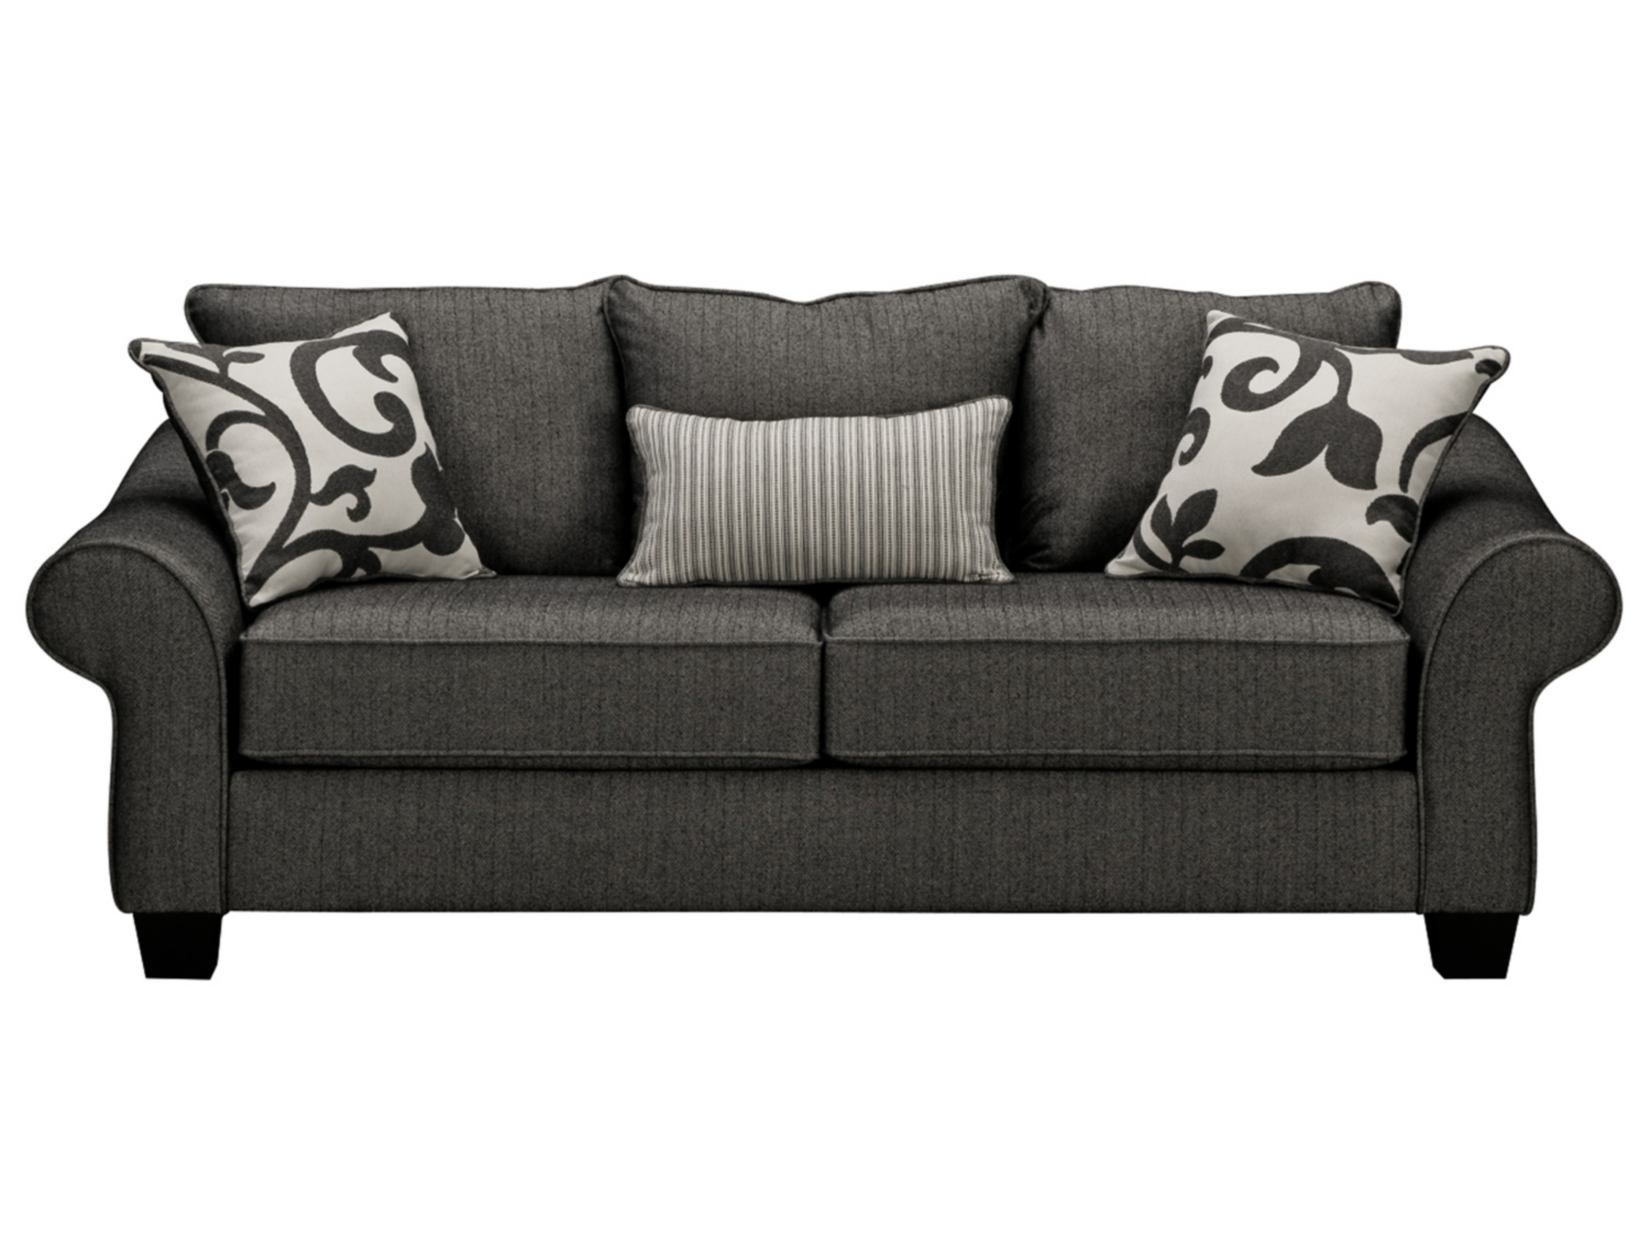 tell city chairs pattern 4548 diy armchair covers 499 colette grey sofa value furniture christmas